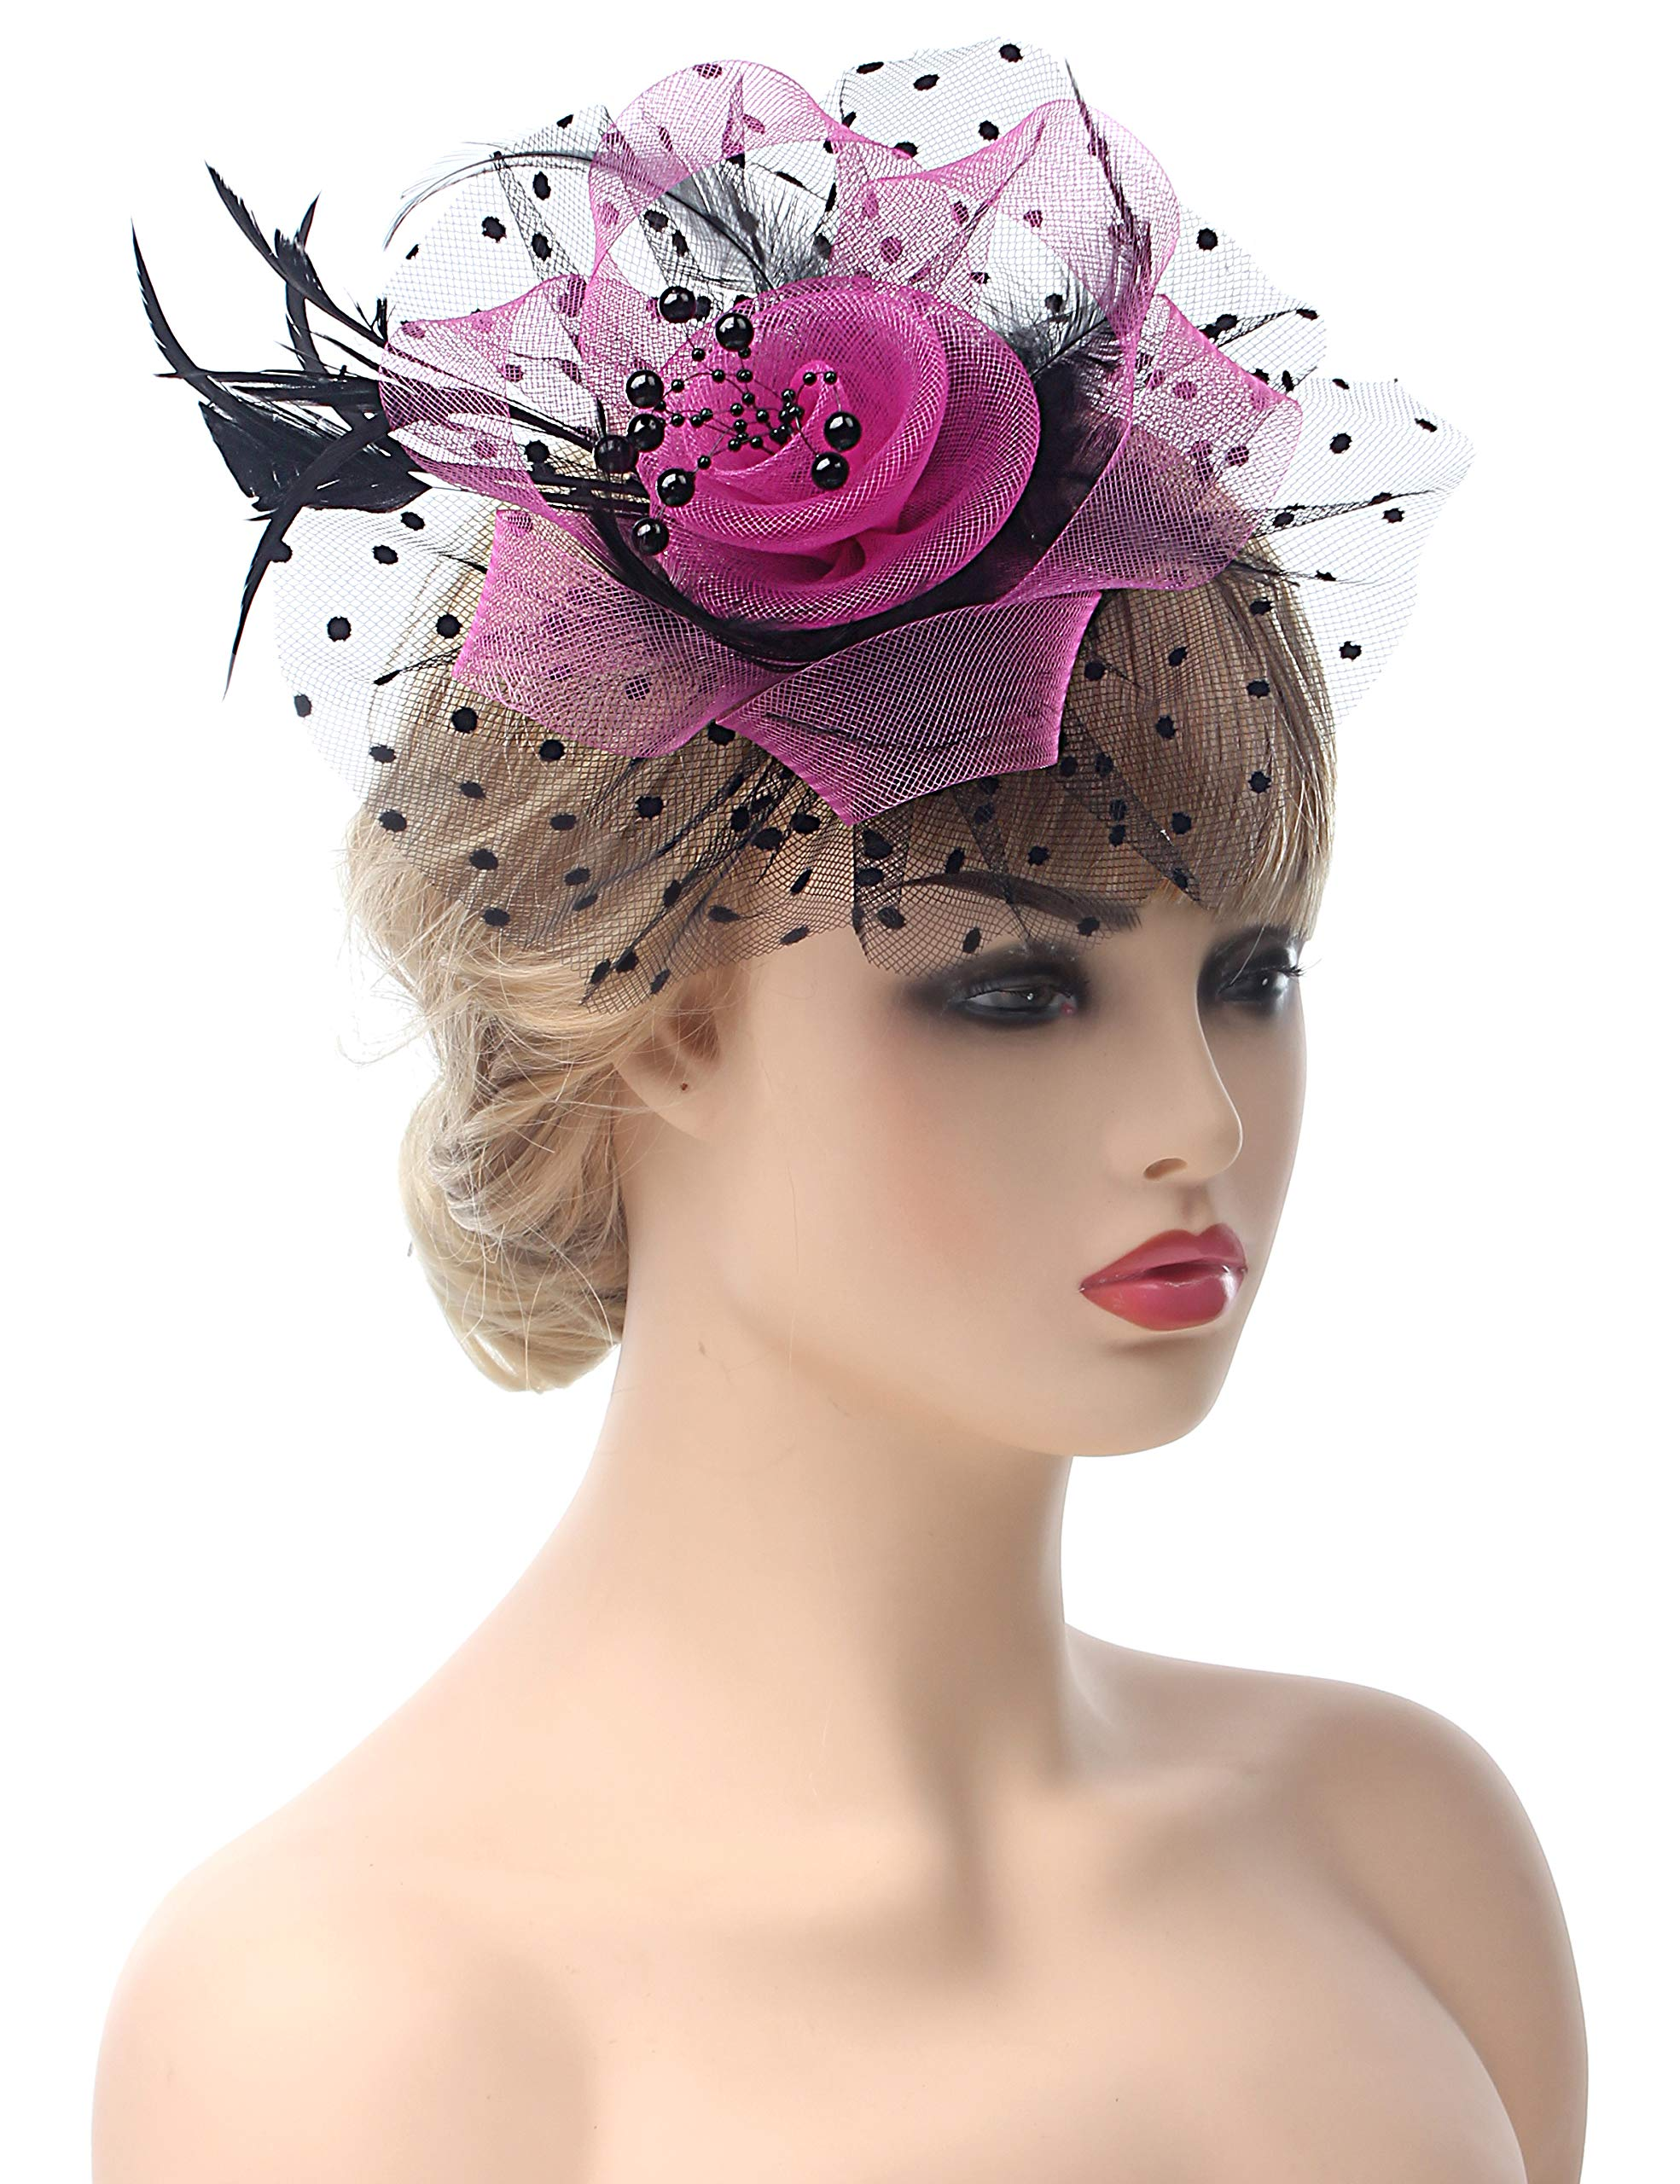 Myjoyday Fascinators Hat for Women Tea Party Headband Kentucky Derby Wedding Cocktail Flower Mesh Feathers Hair Clip (Rose and Black)